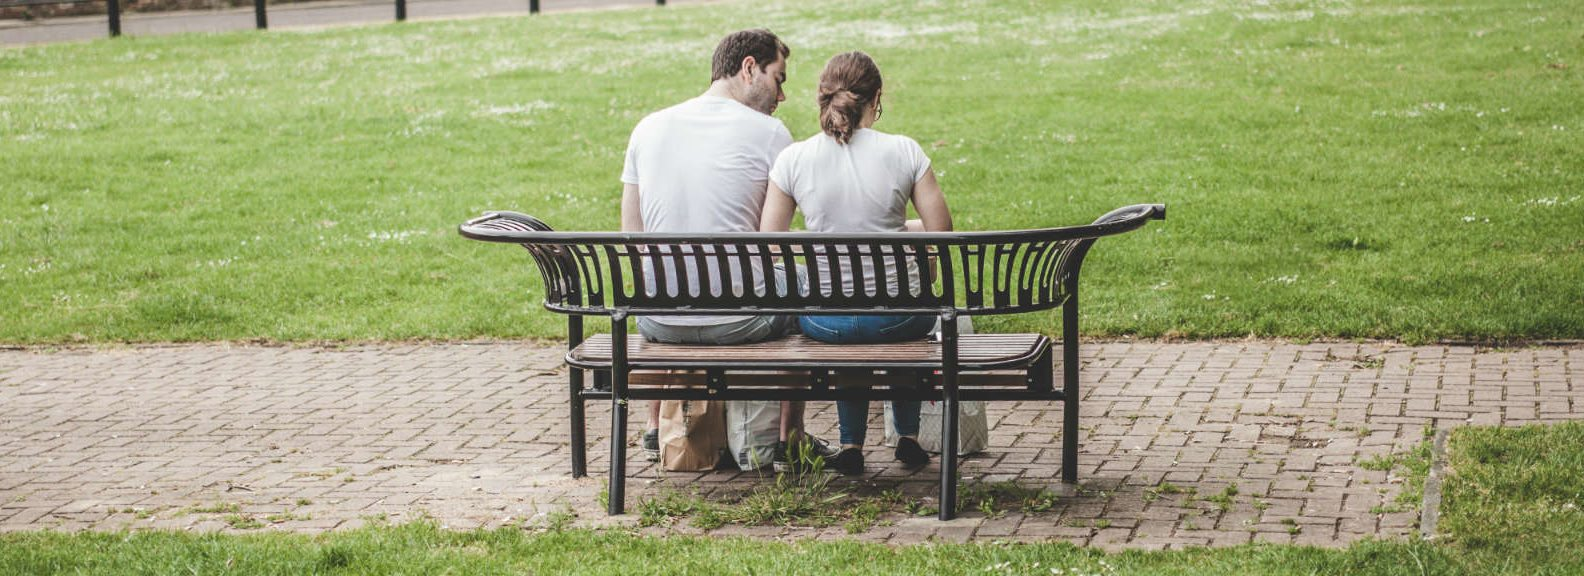 how to resolve conflict in healthy relationships